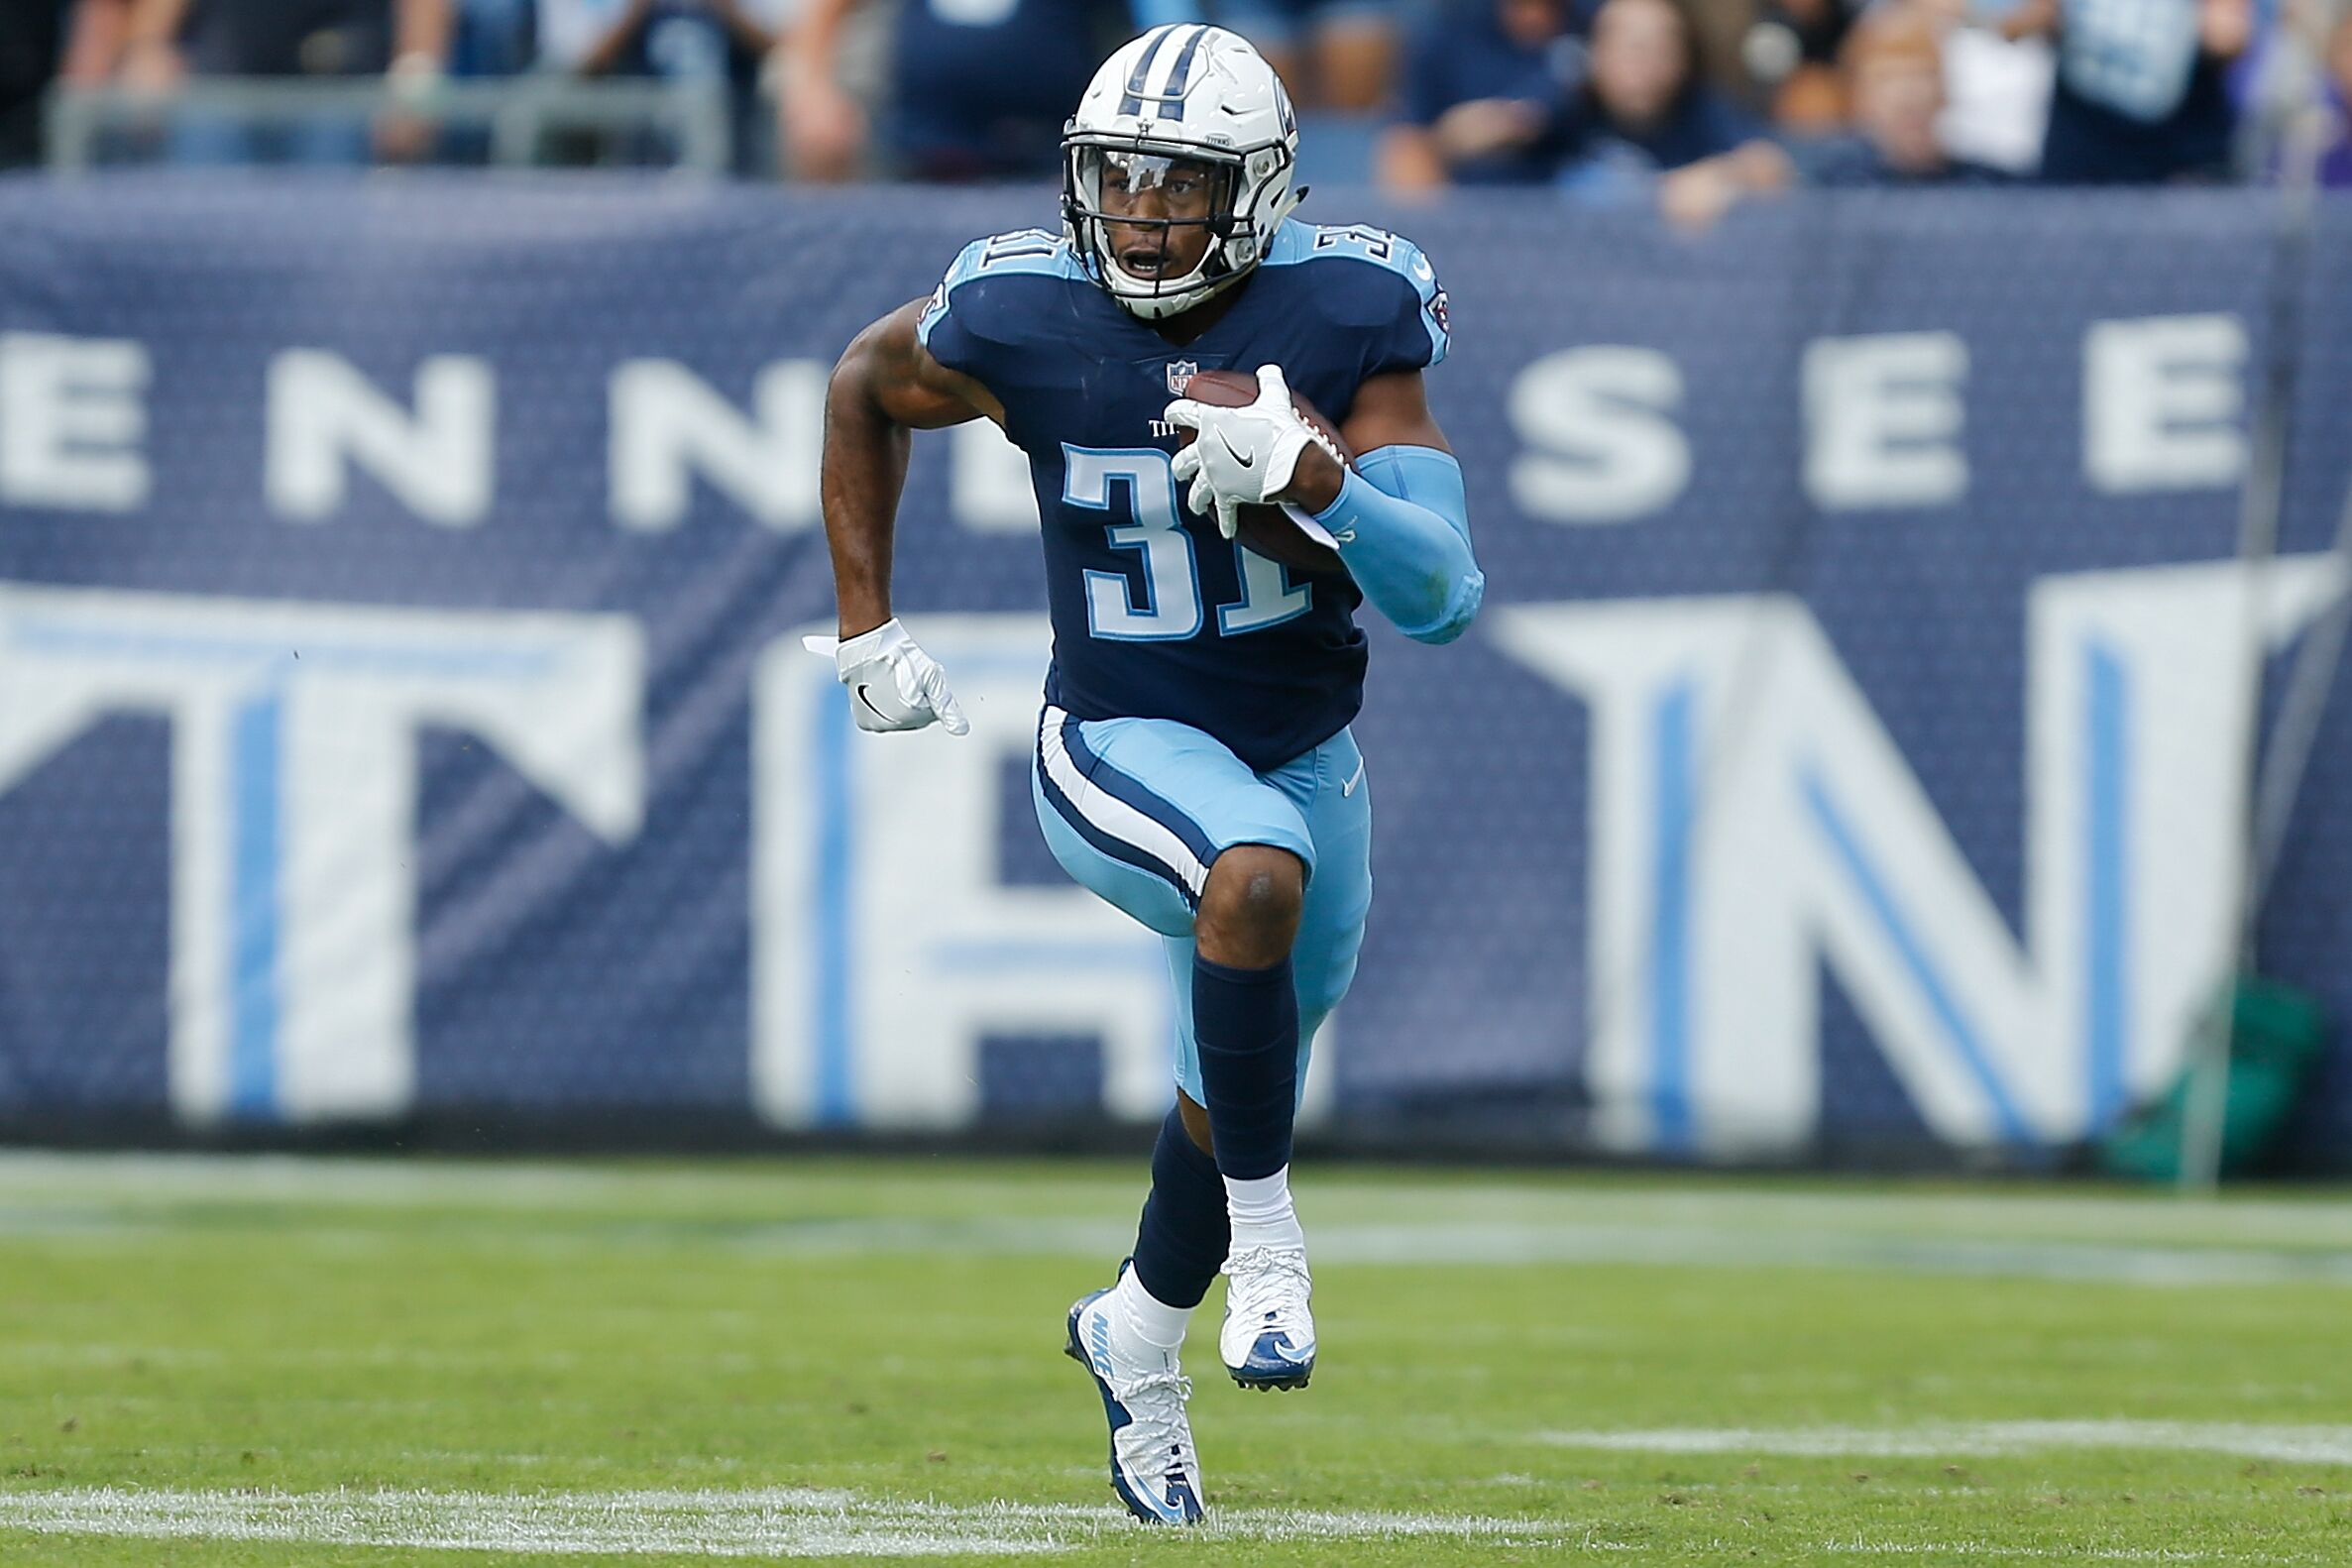 Tennessee Titans: Kevin Byard is still the most underrated player in the NFL